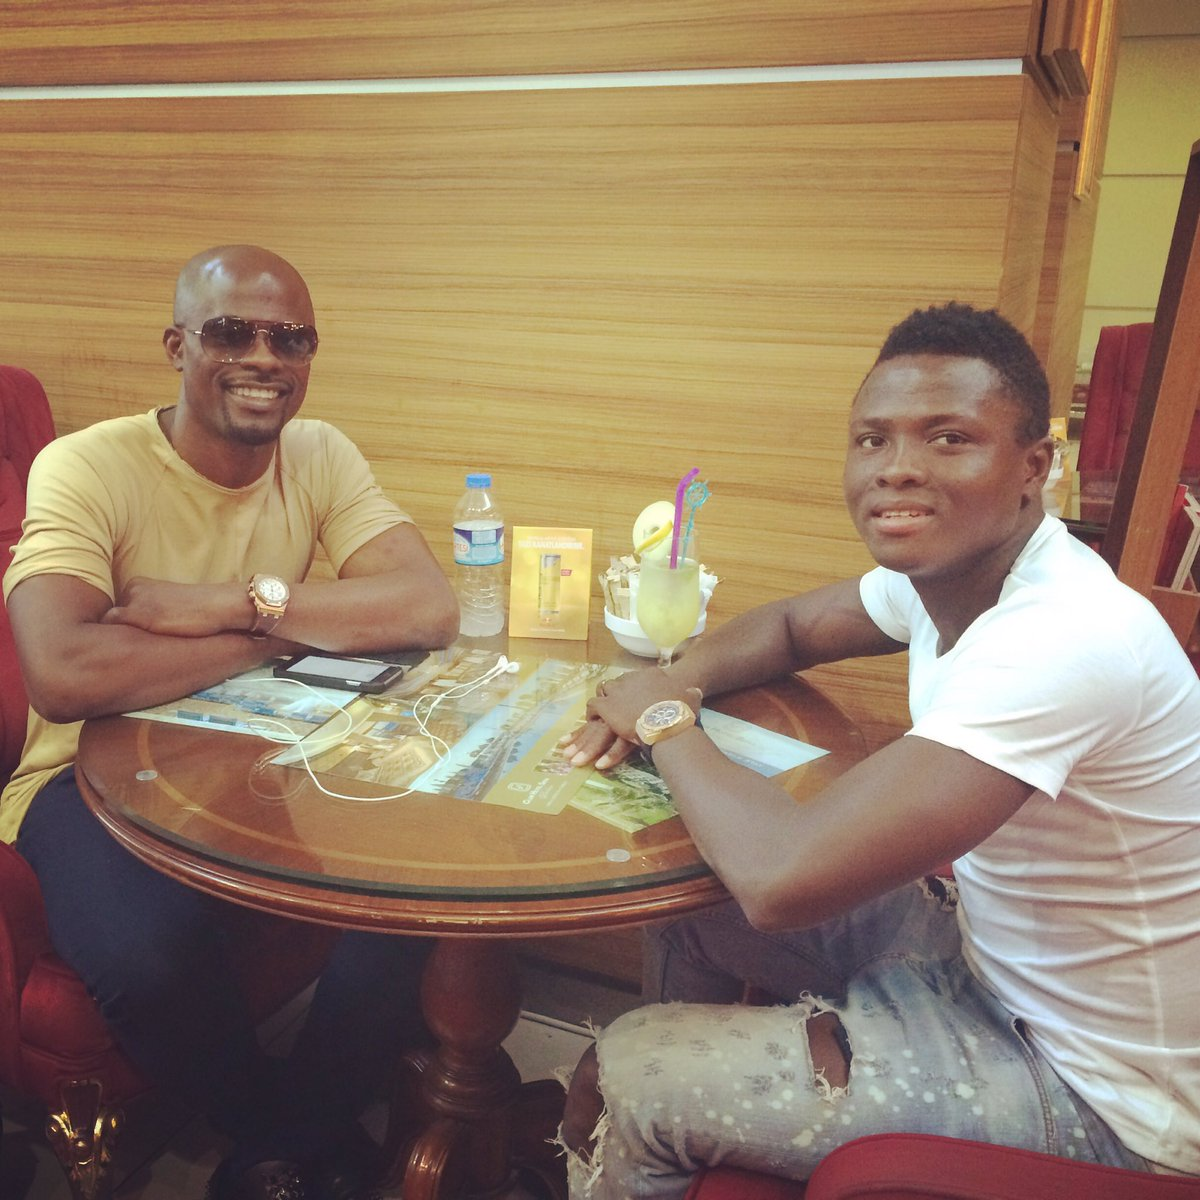 Ghana defender Samuel Inkoom meets up with old pal George Boateng